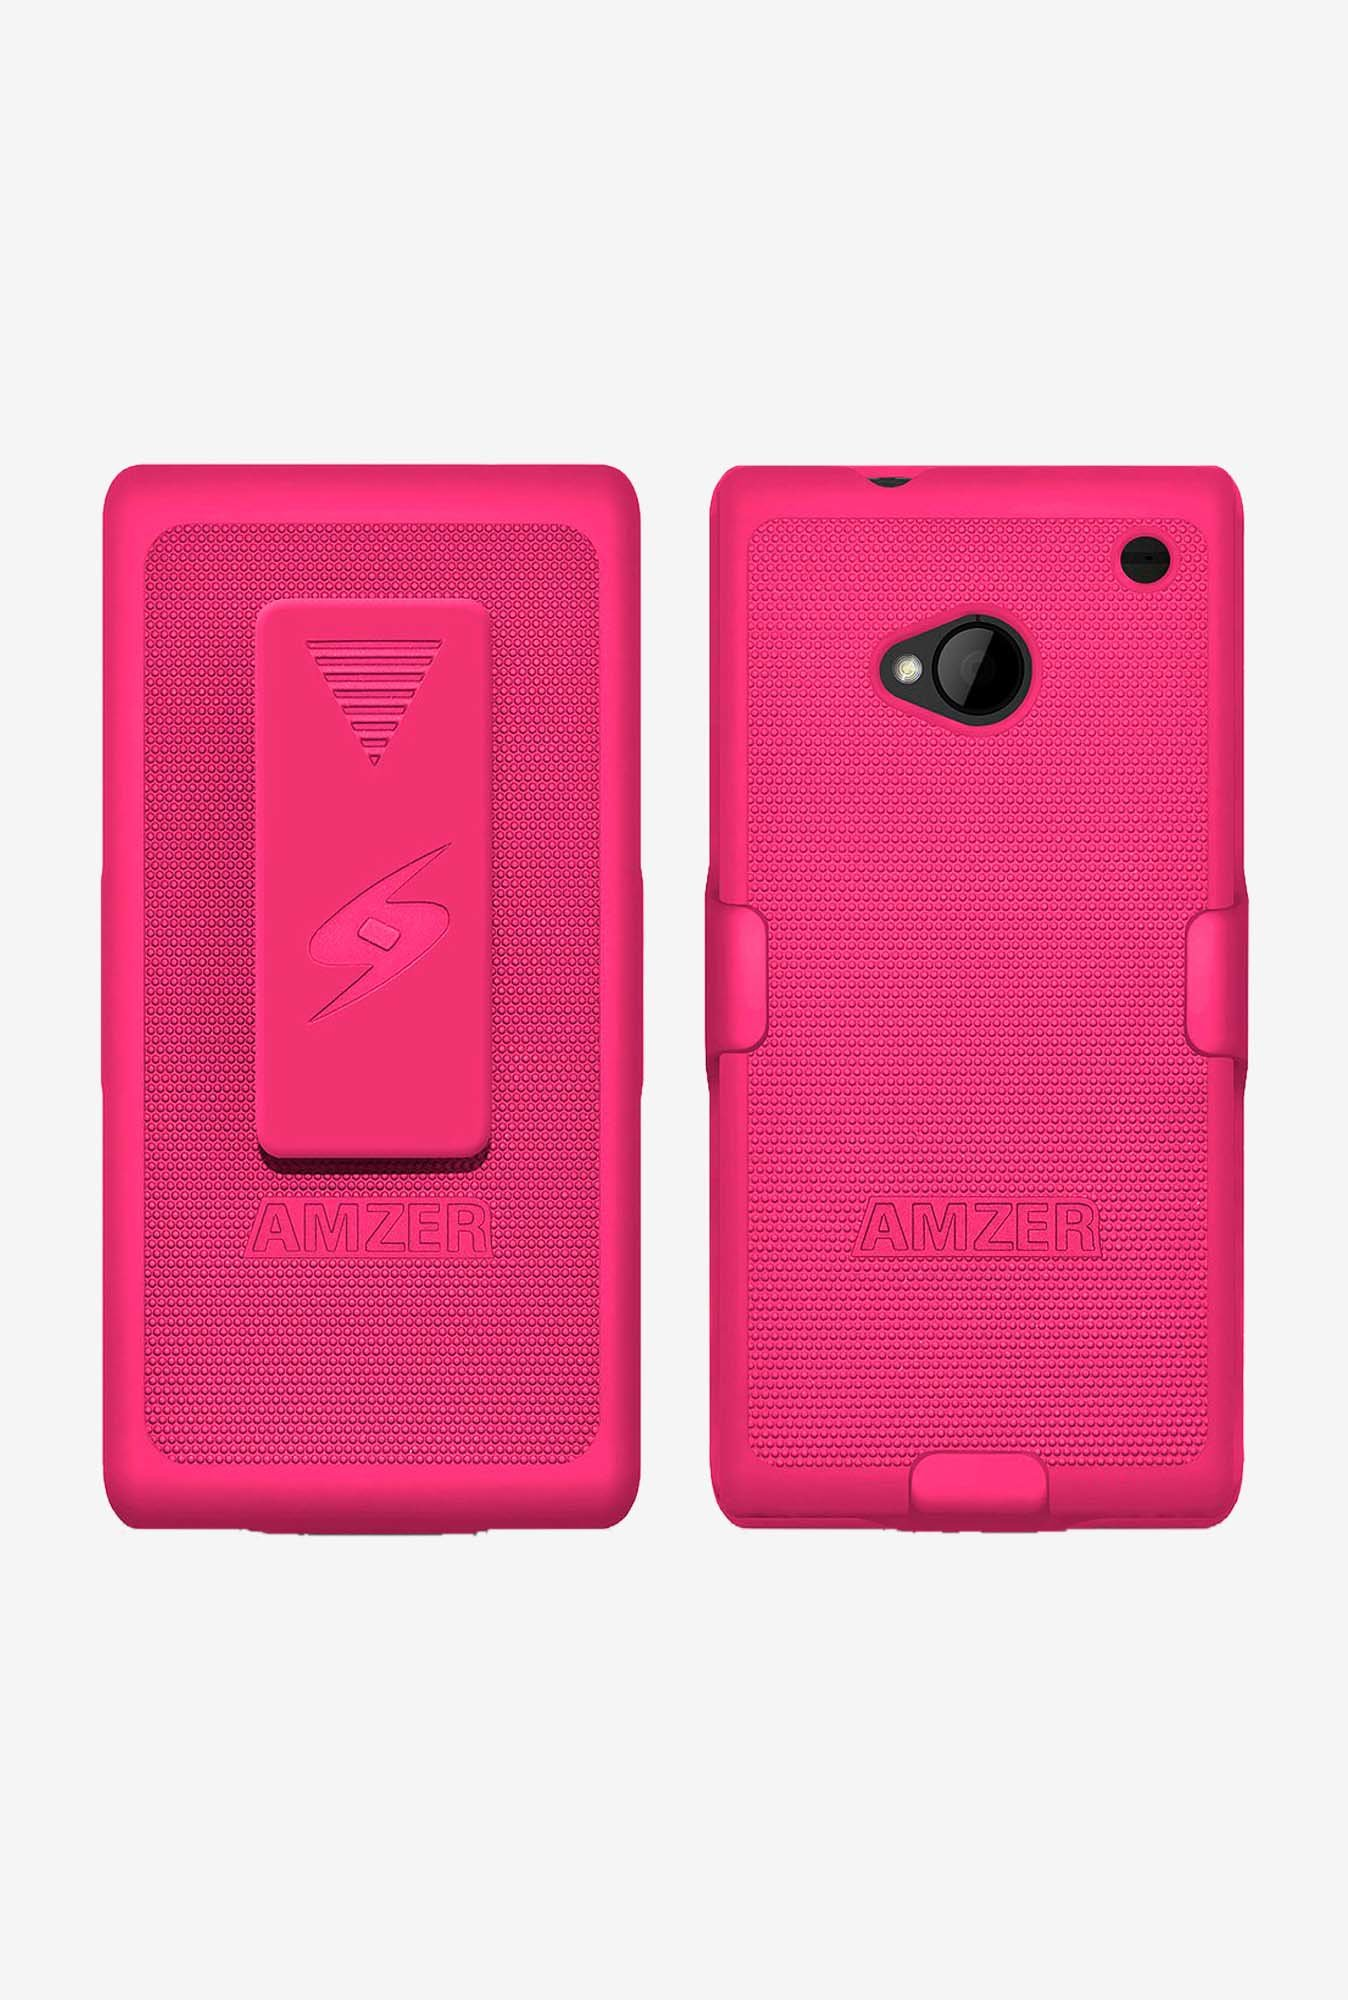 Amzer Shellster Shell Case Hot Pink for HTC One M7